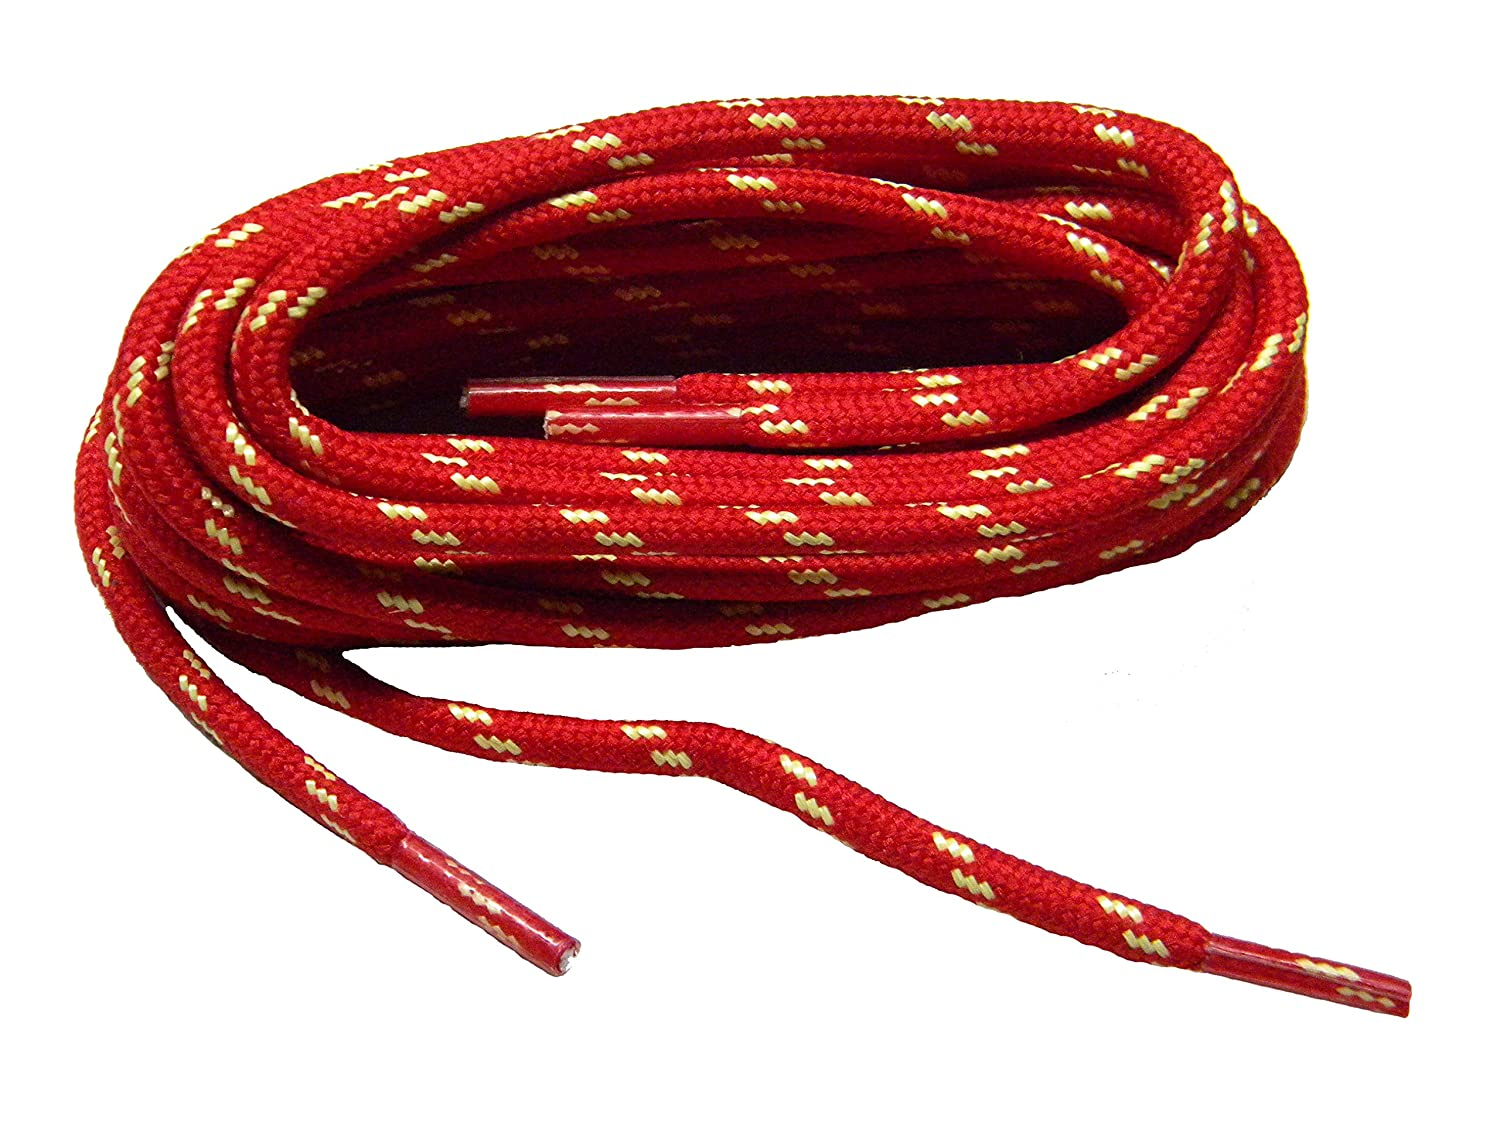 GREATLACES Red w/Natural Yellow Kevlar(R) proTOUGH(TM) Boot Shoelaces -(2 Pair Pack)